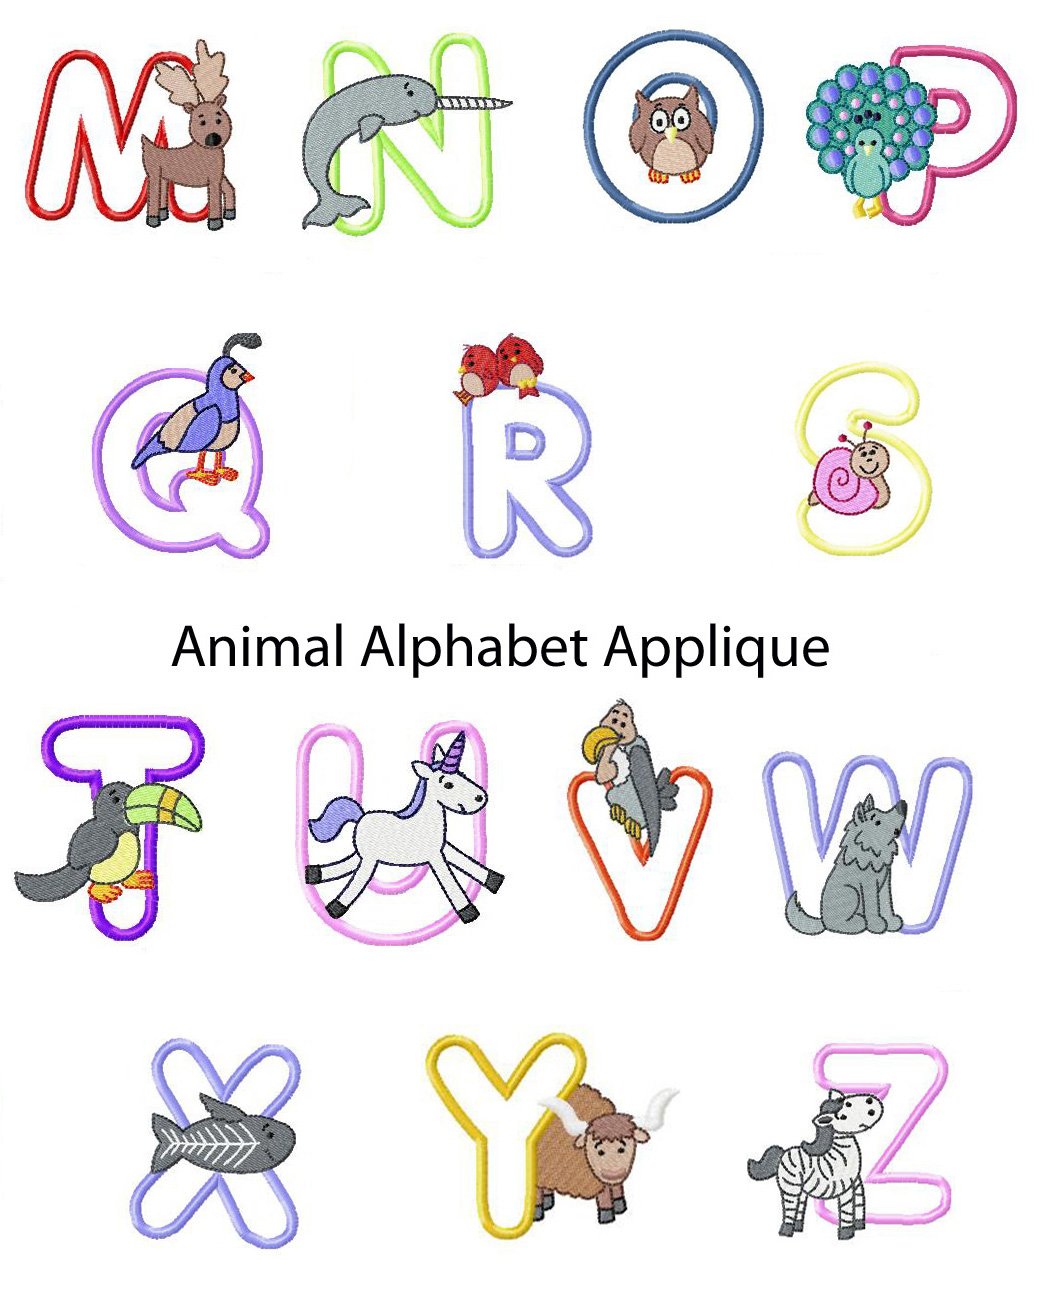 Googles new Alphabet from A to Z pictures  CNET